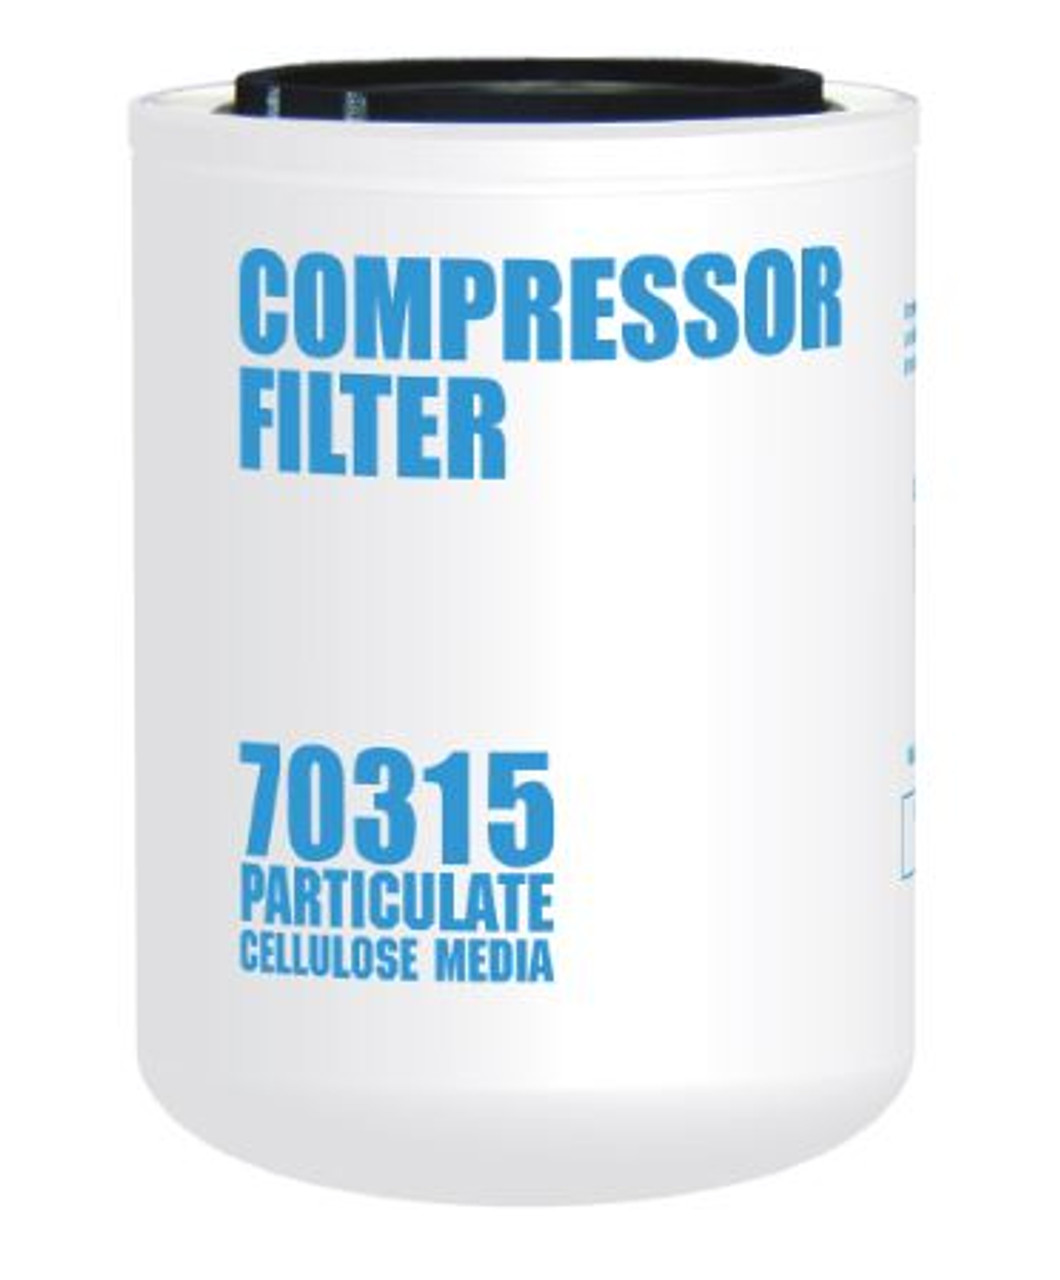 CIM-TEK 70315 Heavy Duty Replacement Spin-On Filter from Big Filter 2-Pack